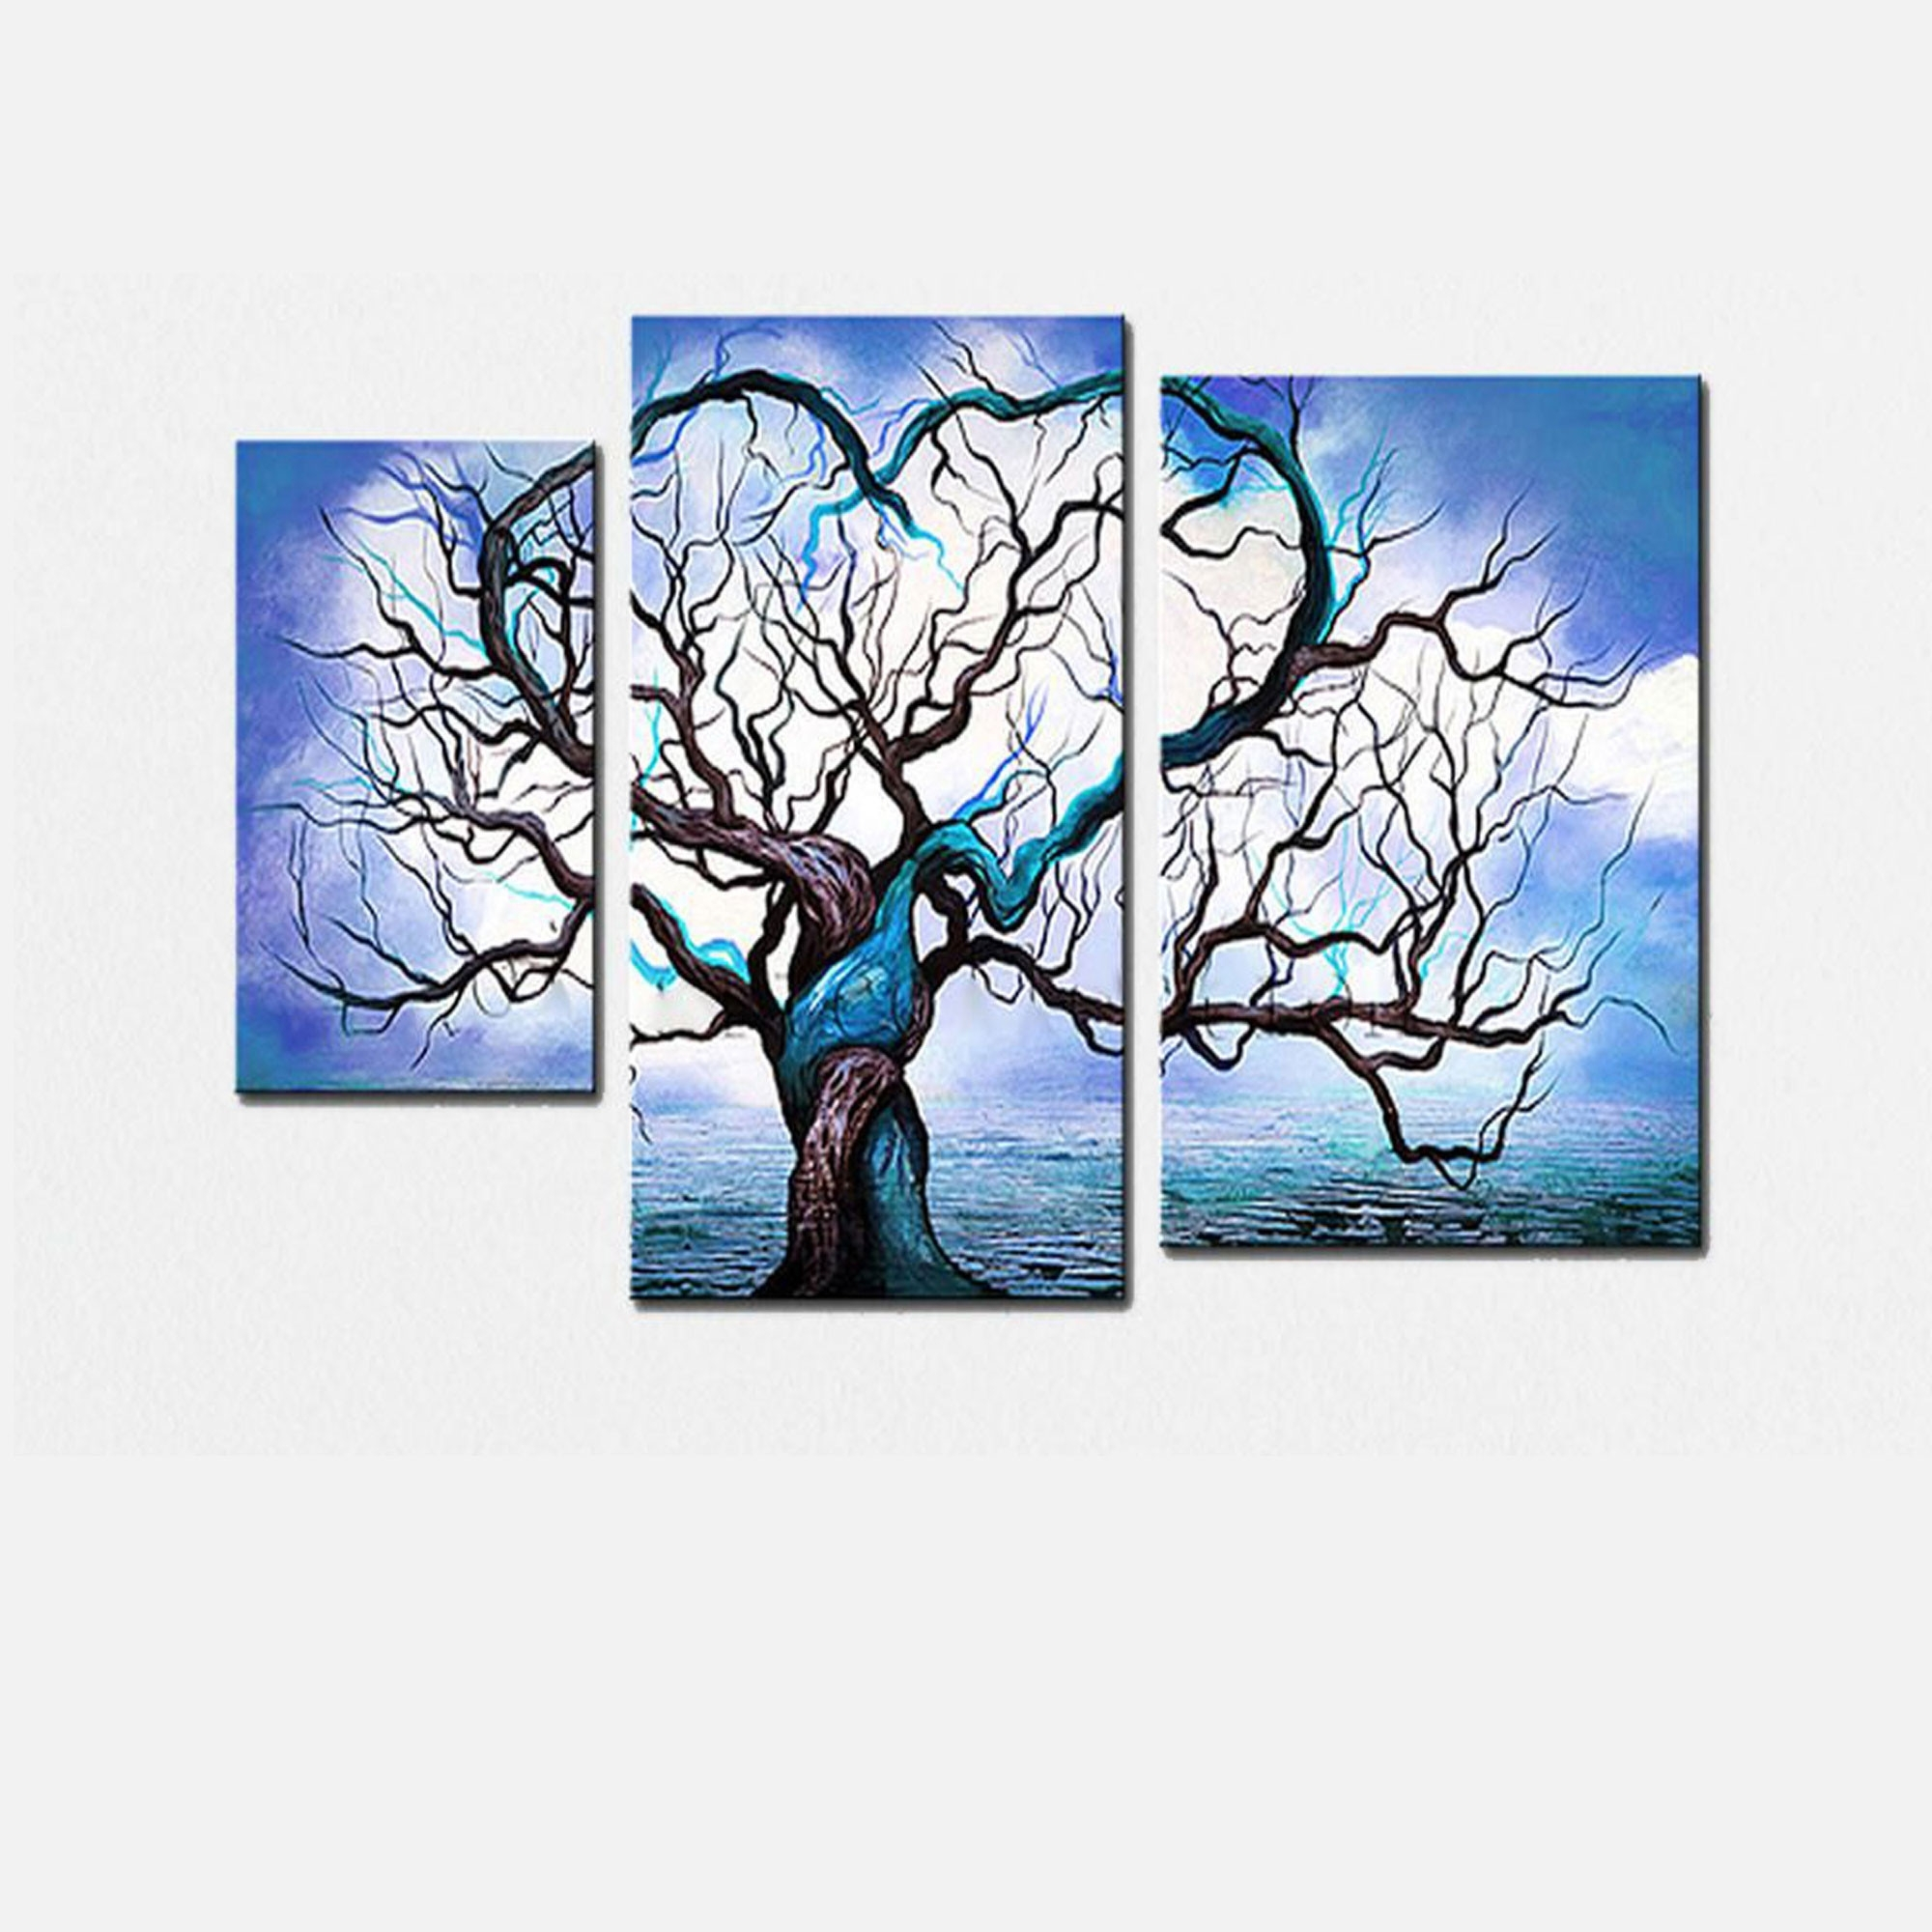 Blue Tree Love Landscape Canvas Wall Art Oil Painting | Creativity With Regard To Most Recently Released Masters Canvas Wall Art (View 13 of 15)